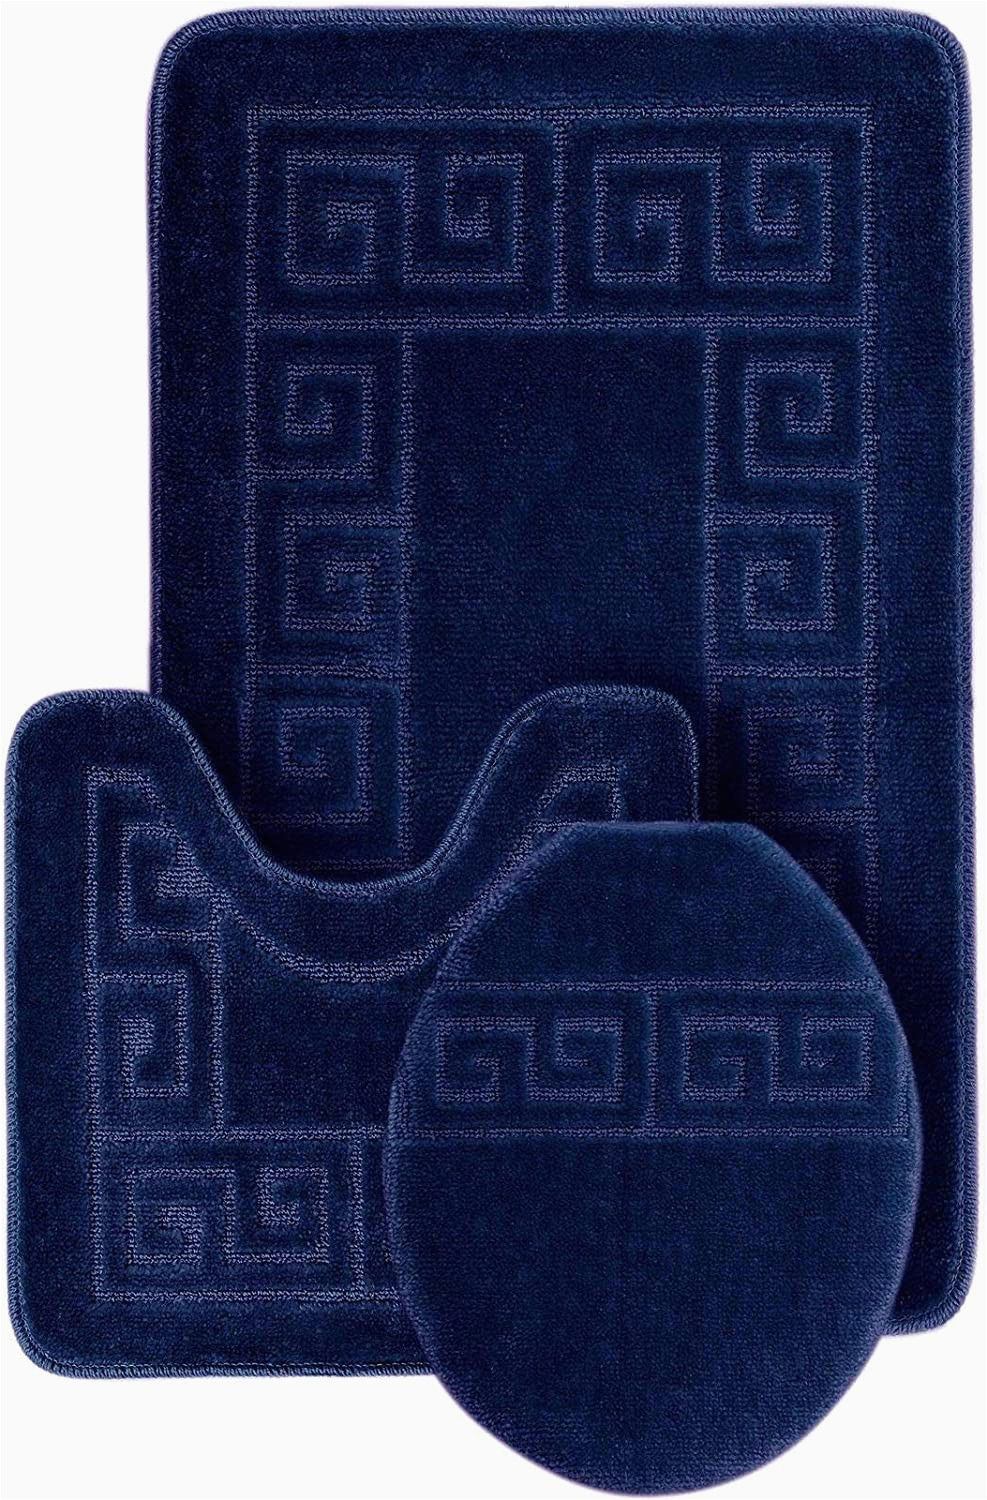 """3 Piece Bathroom Rugs Wpm World Products Mart Bathroom Rugs Set 3 Piece Bath Pattern Rug 20""""x32"""" Contour Mats 20""""x20"""" with Lid Cover Navy"""